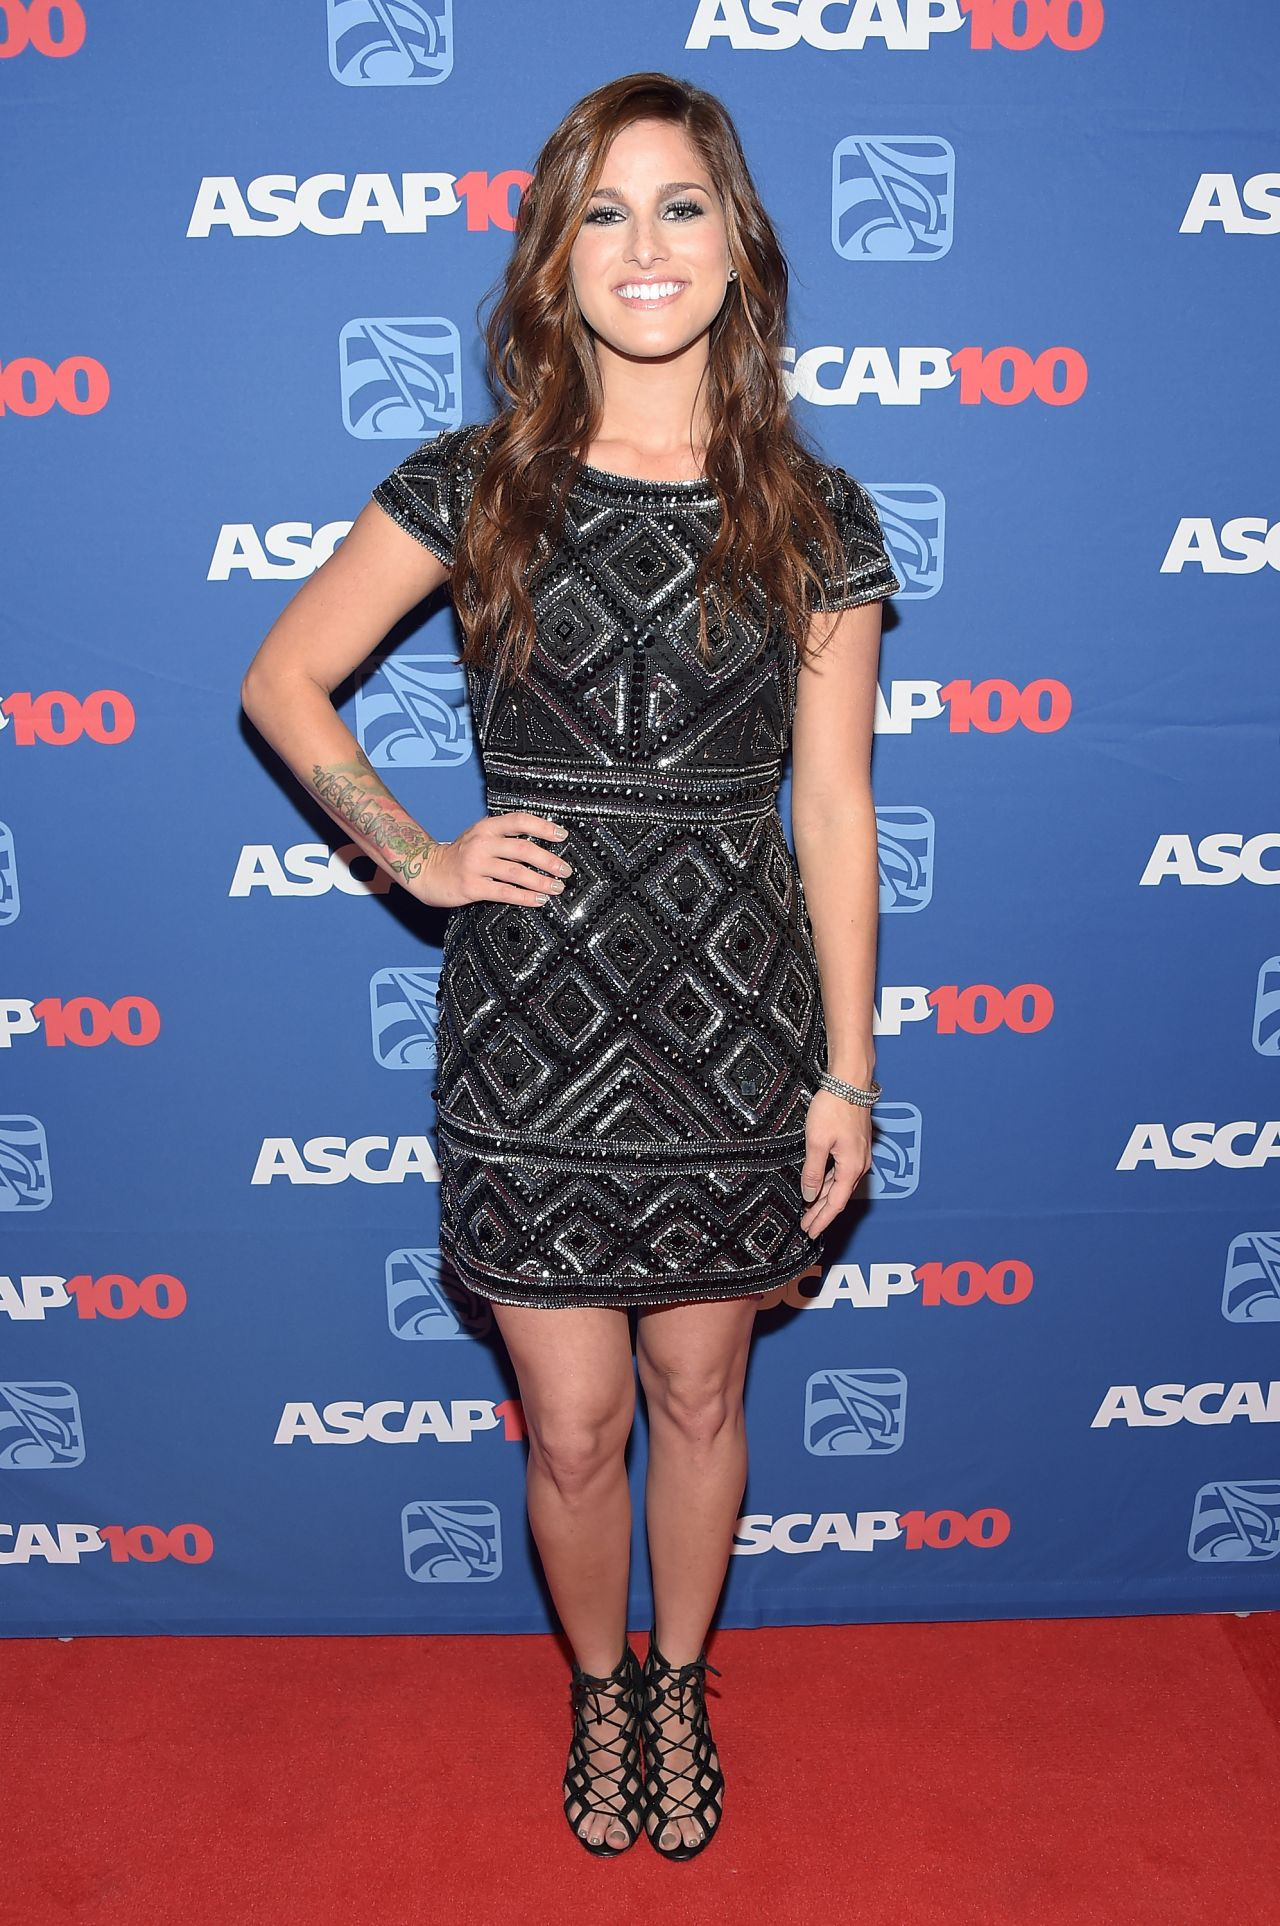 Cassadee Pope - 2014 ASCAP Country Music Awards